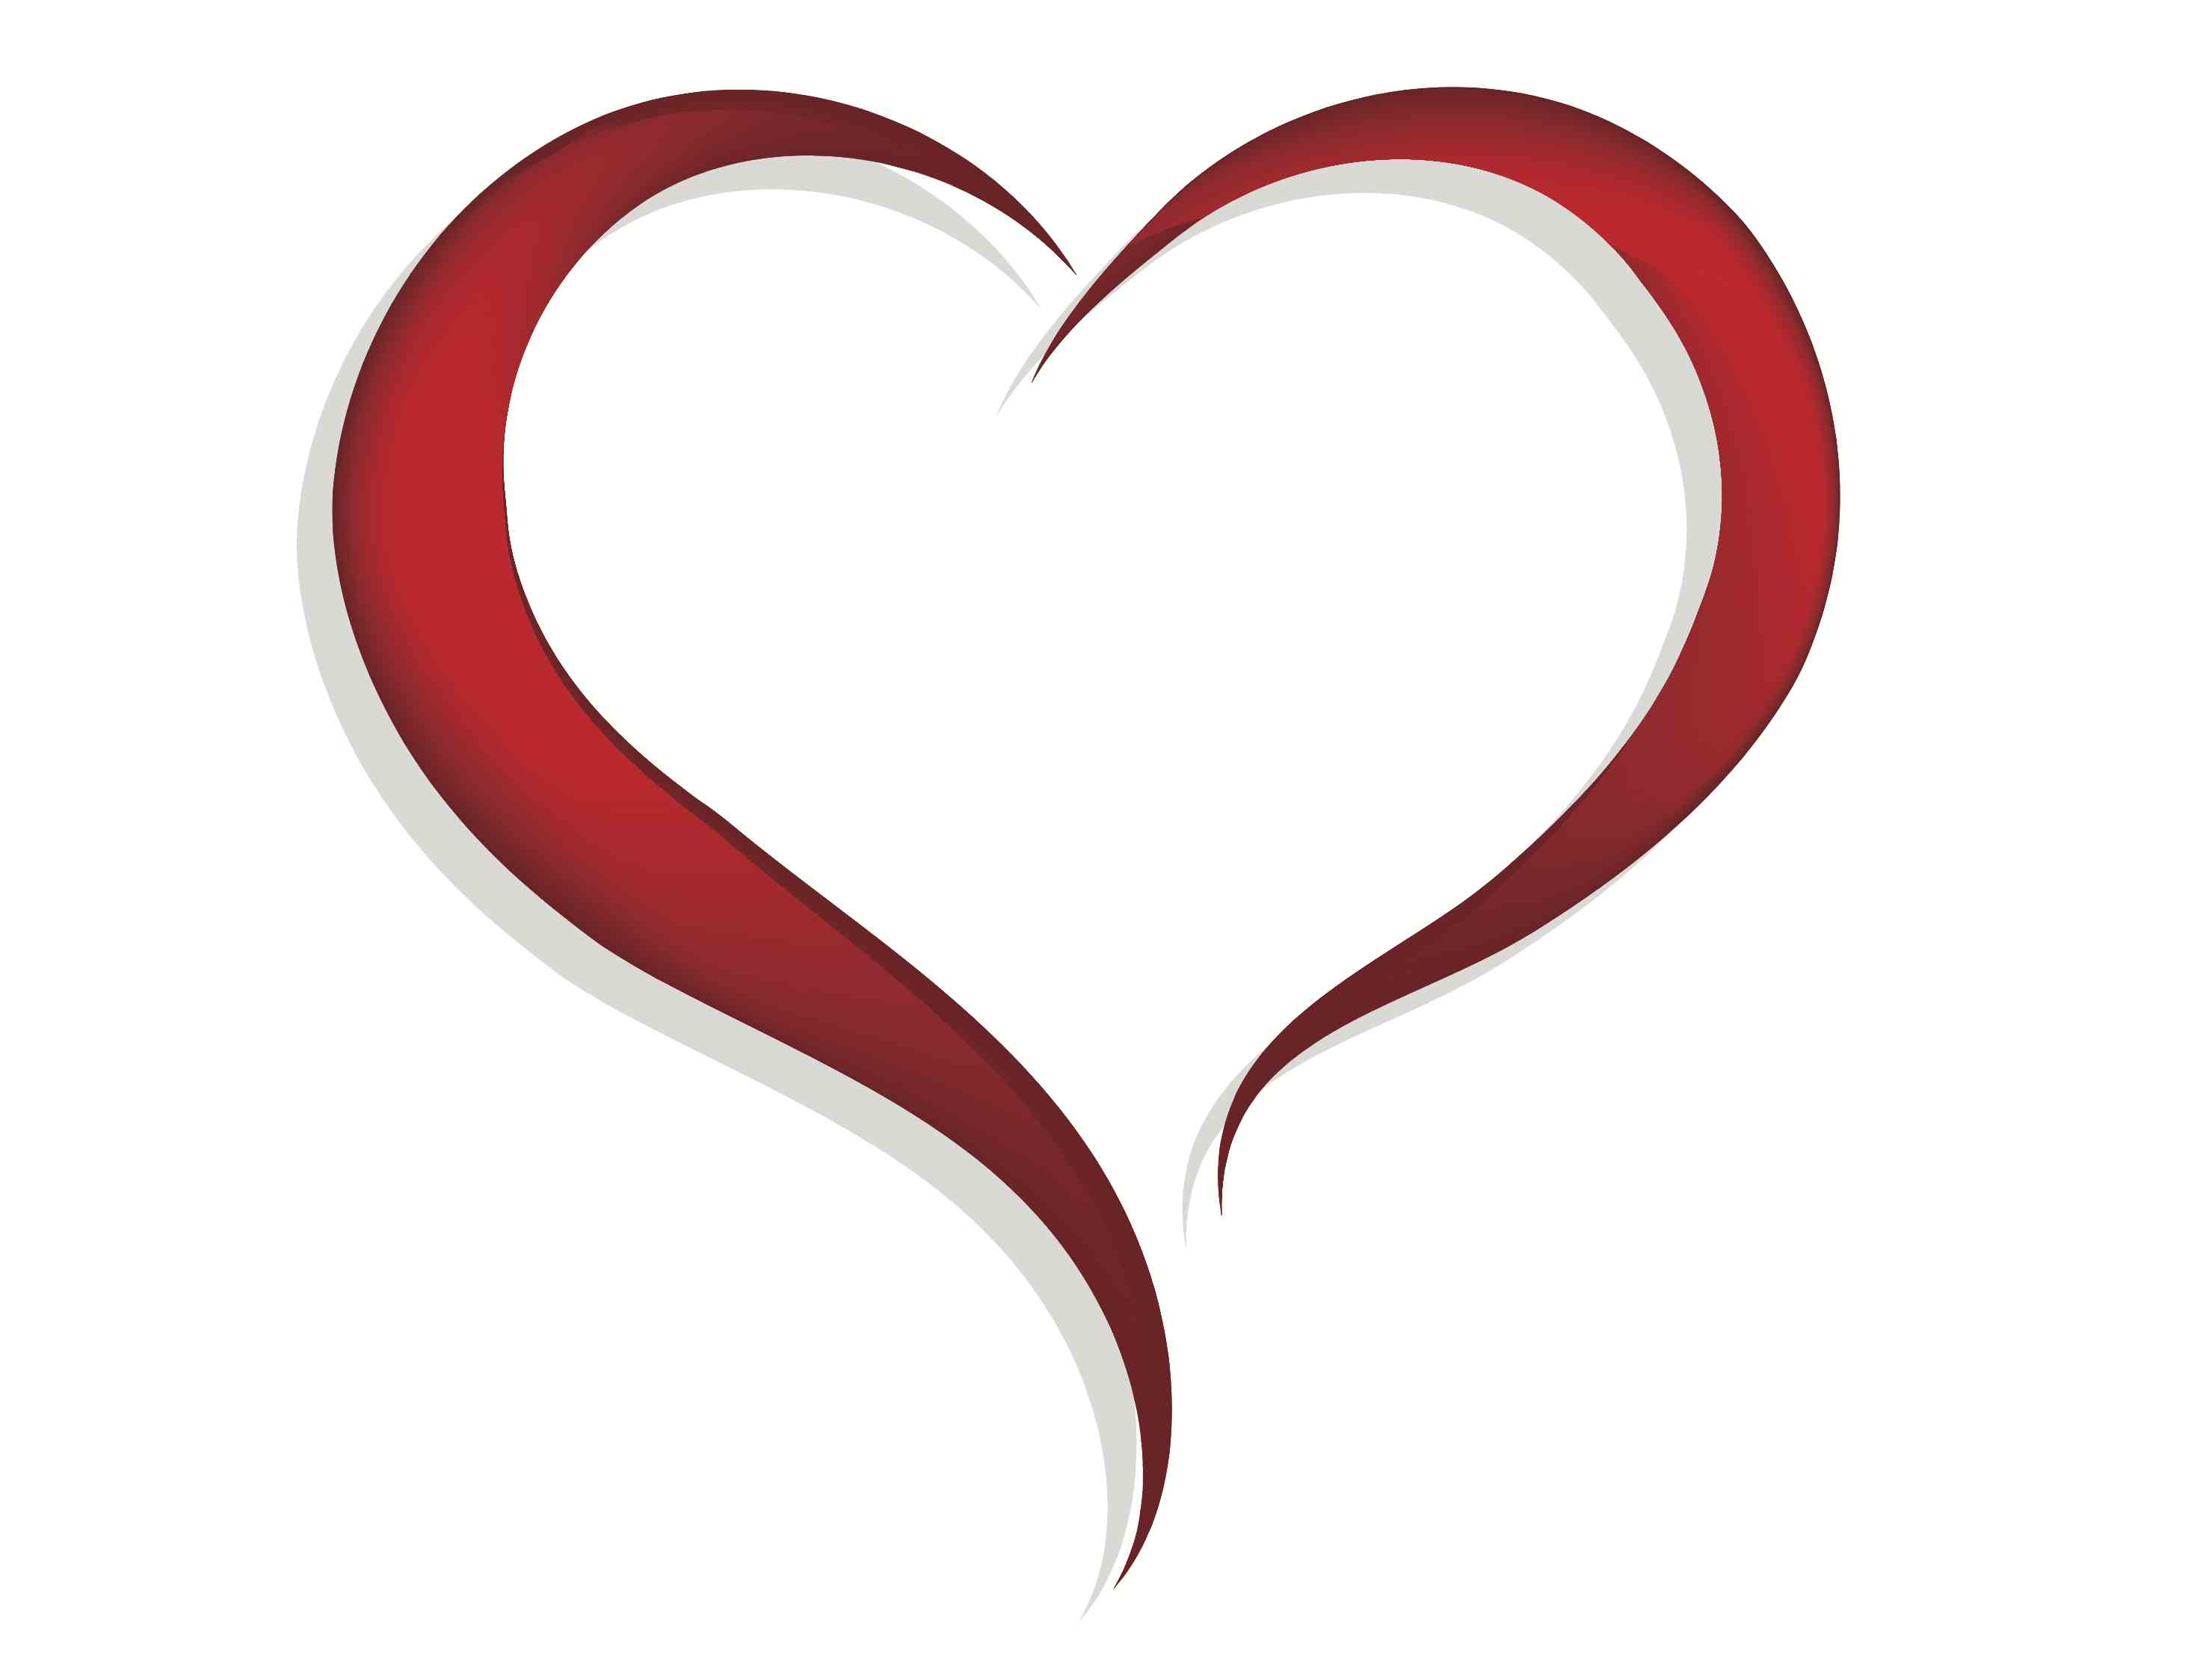 Heart - Heart PNG HD Transparent Background - Heart Jpg PNG HD